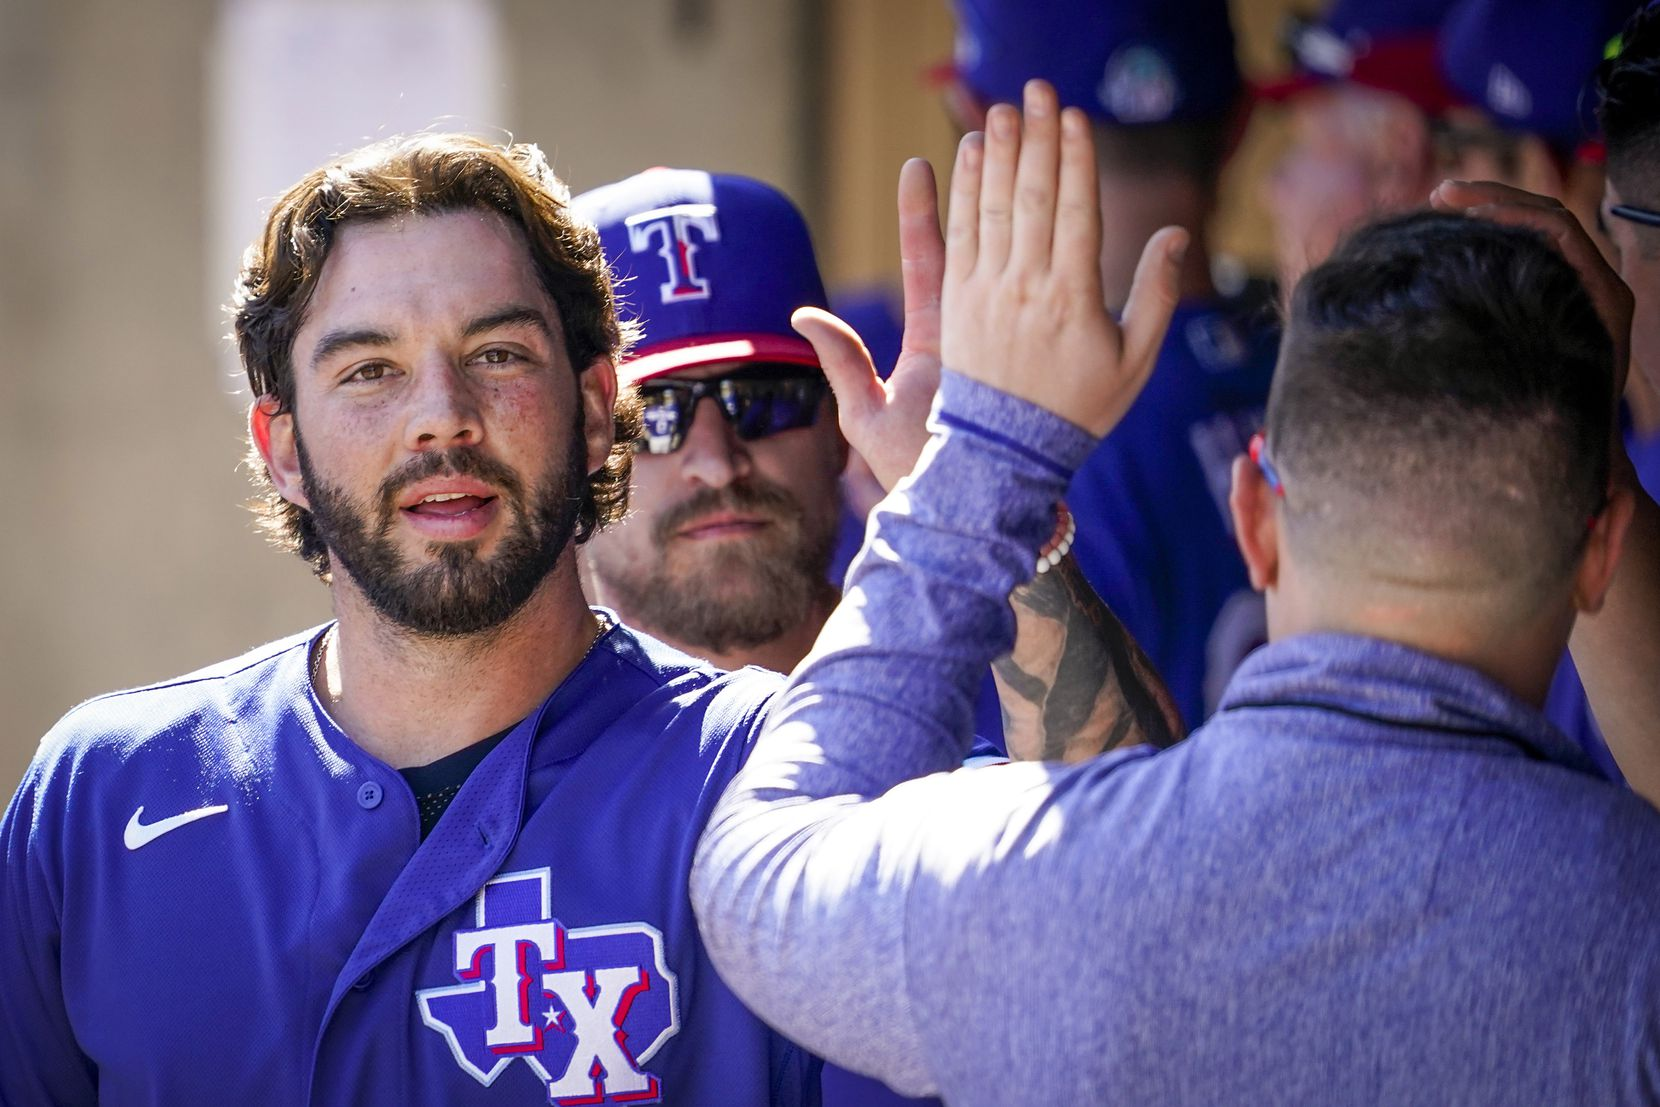 Texas Rangers catcher Blake Swihart celebrates after scoring a run during the third inning of a spring training game against the Colorado Rockies at Salt River Fields at Talking Stick on Wednesday, Feb. 26, 2020, in Scottsdale, Ariz.